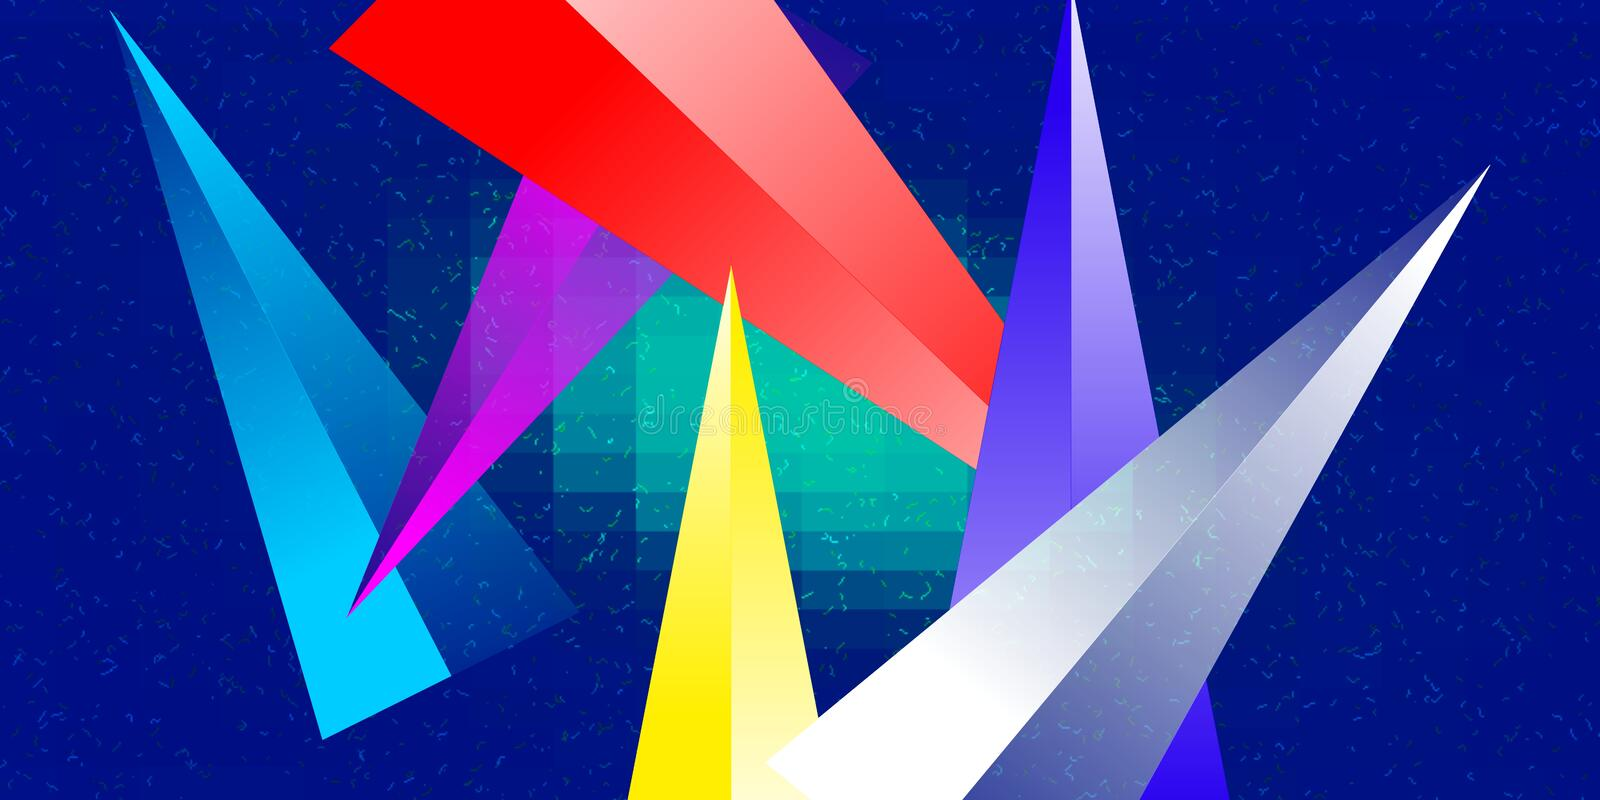 Multi  color with  lighted and sparkling effect computer generated background  image for wallpaper design. Multi color with  lighted and sparkling effect royalty free illustration